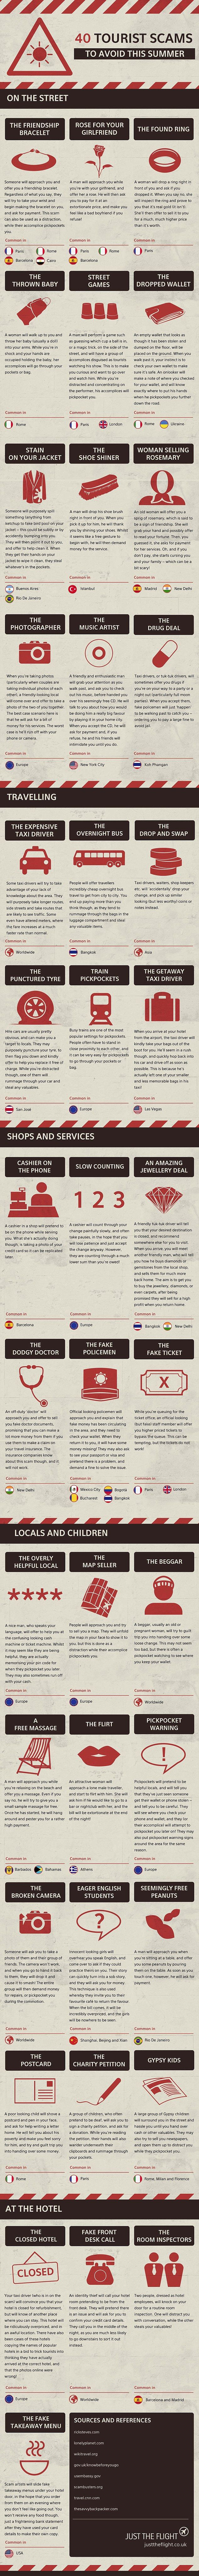 Travel scams to watch out for this summer. - Imgur